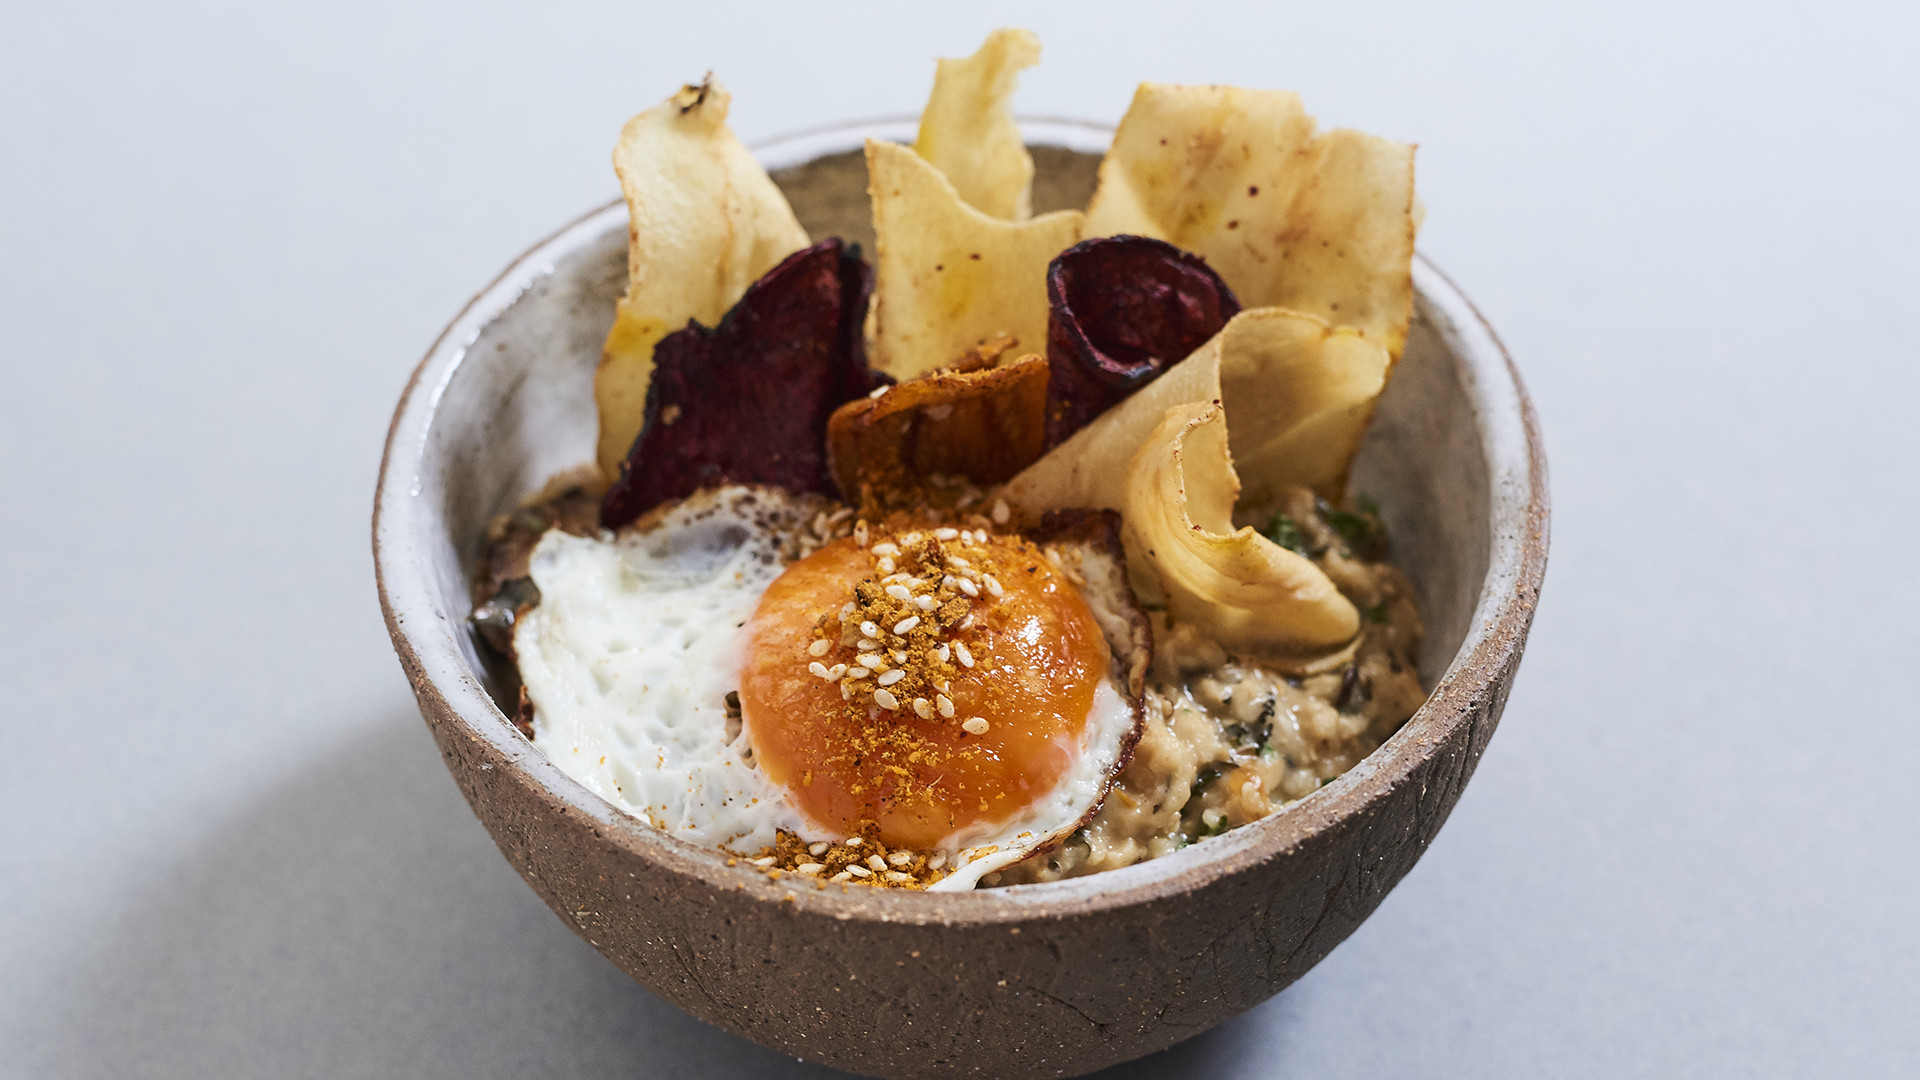 Ally Head and Lydia Winter's winning dish at this year's Rude Health Porridge Championships